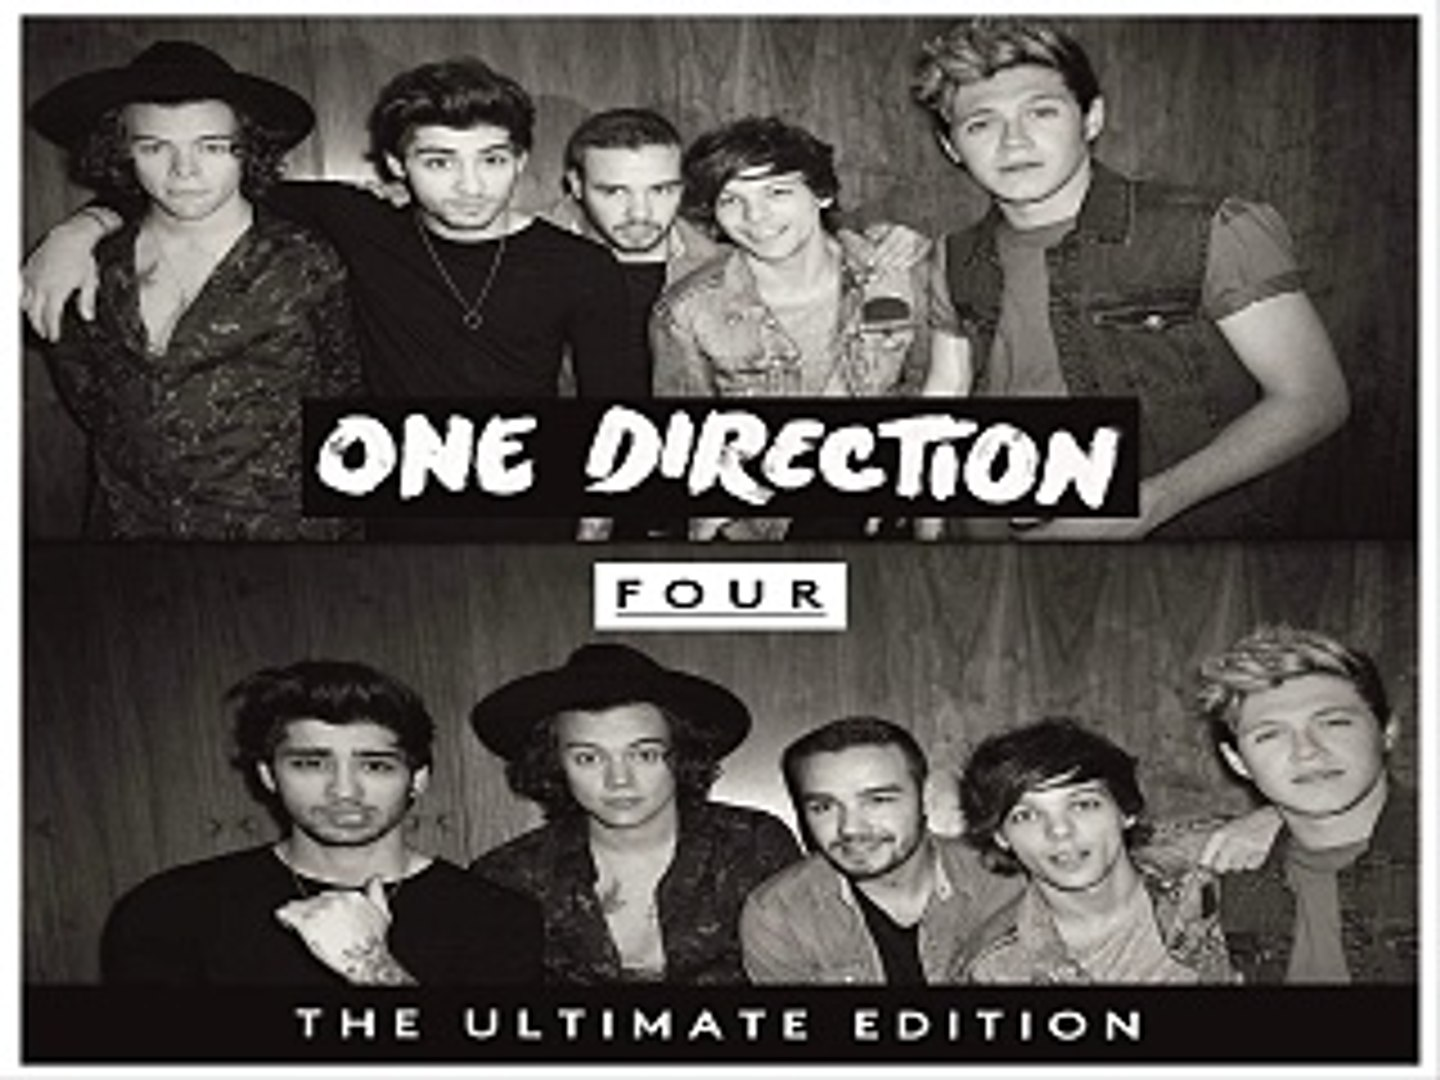 [ DOWNLOAD ALBUM ] One Direction - FOUR (Deluxe Version) [ iTunesRip ]